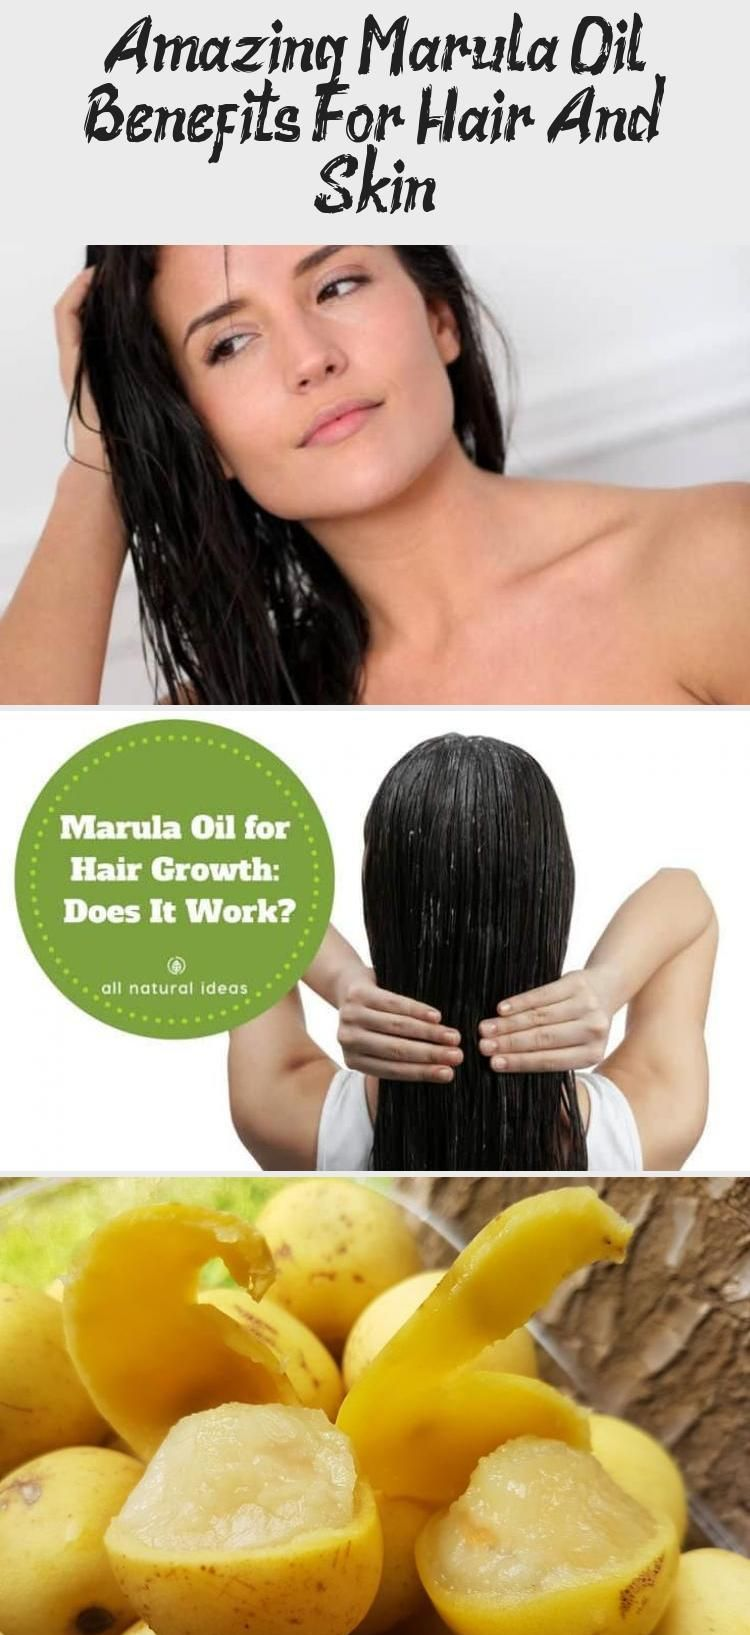 Hair Supplement} and Using marula oil for hair growth is becoming more popular. But does it really work and are the benefits any different than using other oils such as argan? #hair #hairgrowth | allnaturalideas.com via @allnaturalideas #Indianhairgrowth #hairgrowthSerum #hairgrowthForKids #hairgrowthGummies #hairgrowthRecipes